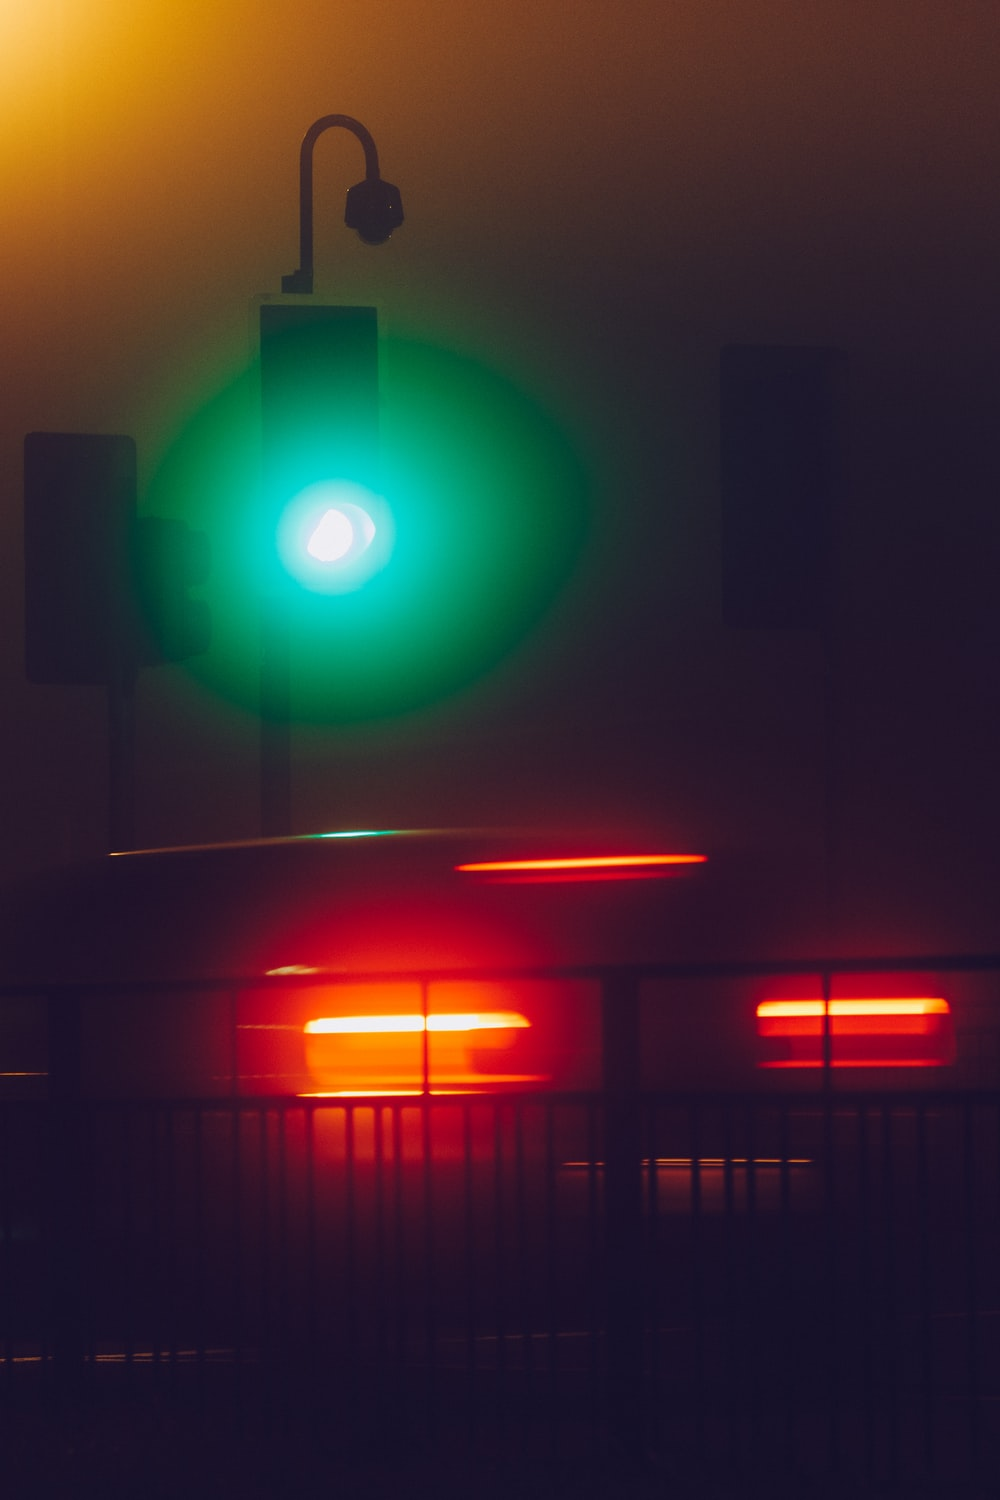 green and orange traffic light